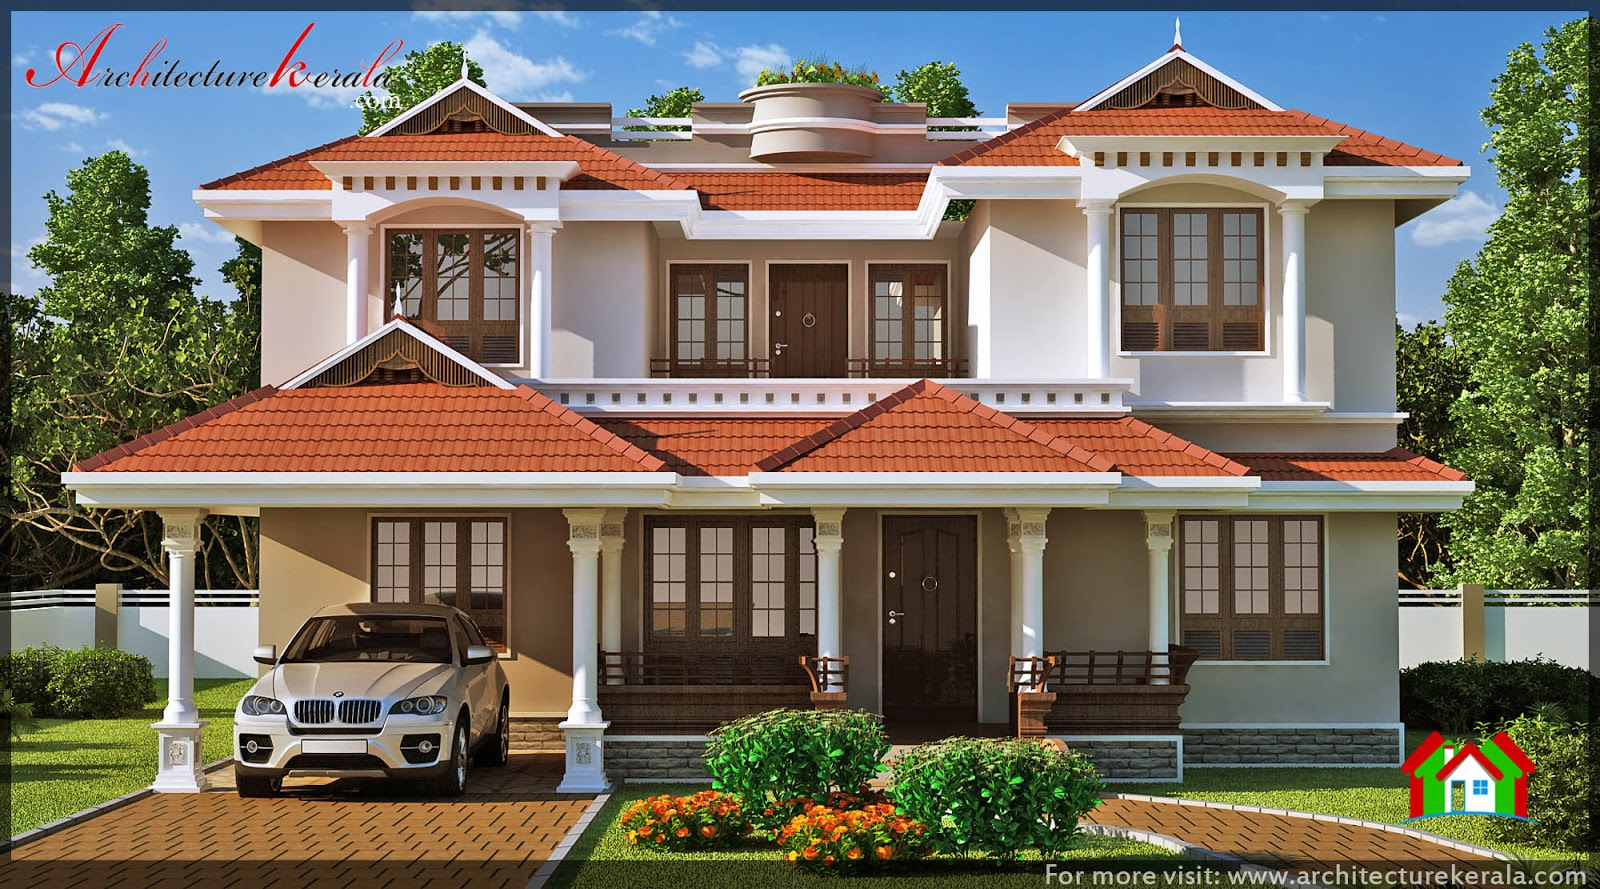 Traditional kerala house elevation architecture kerala for Kerala traditional home plans